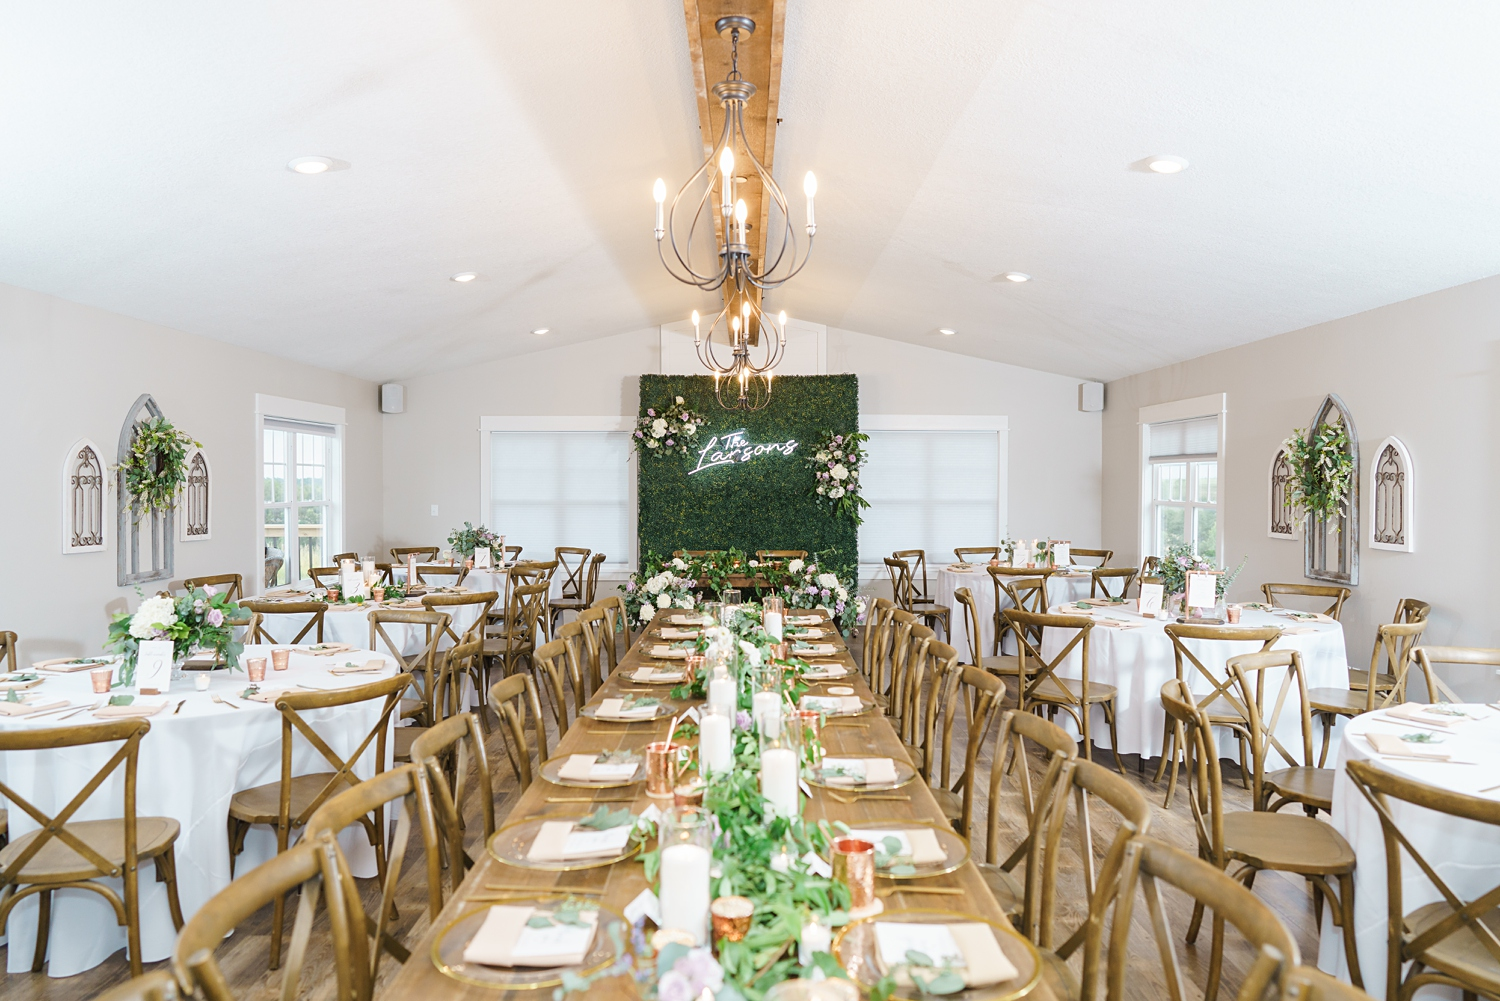 alta house wedding reception in newton iowa with greenery backdrop, farmhouse tables, and lavender and copper details